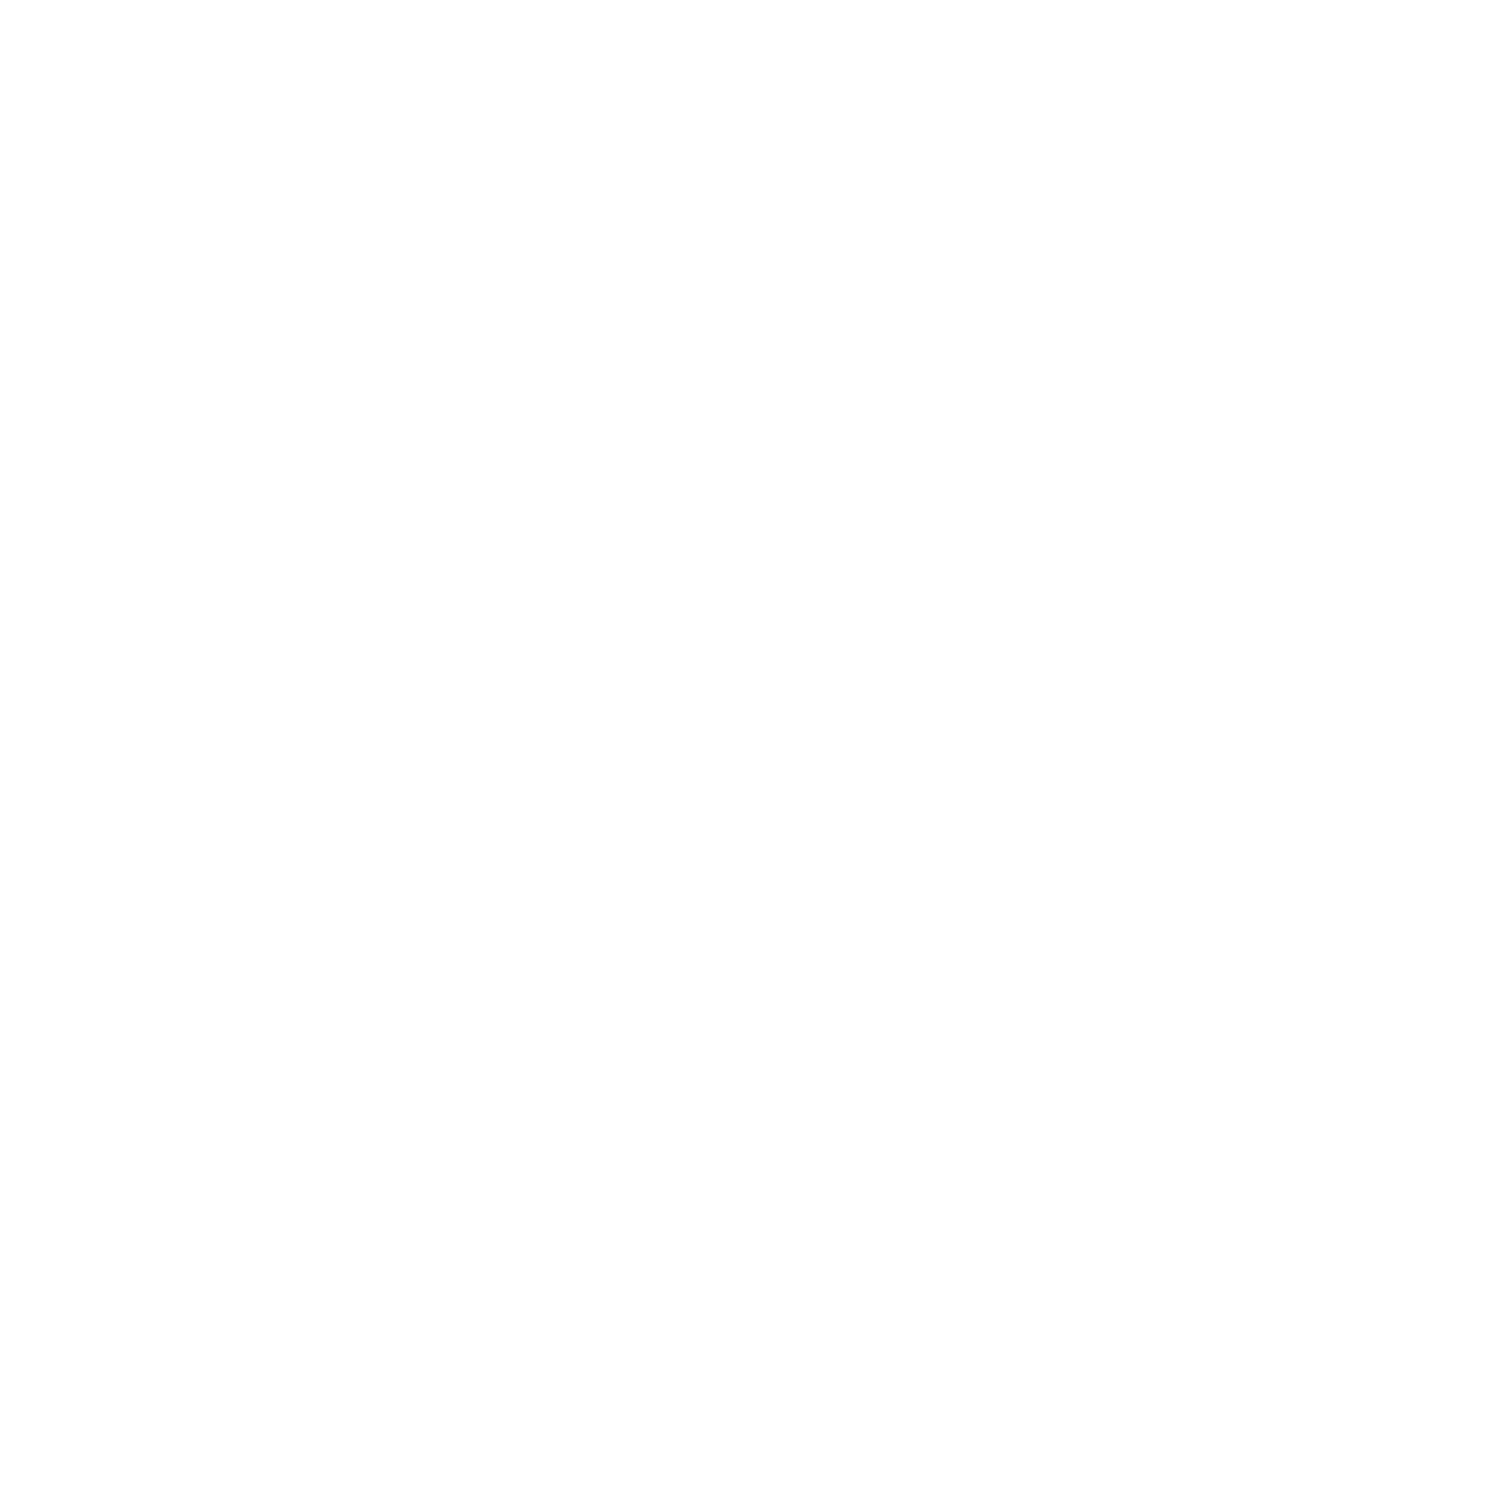 Let's Be Superheroes